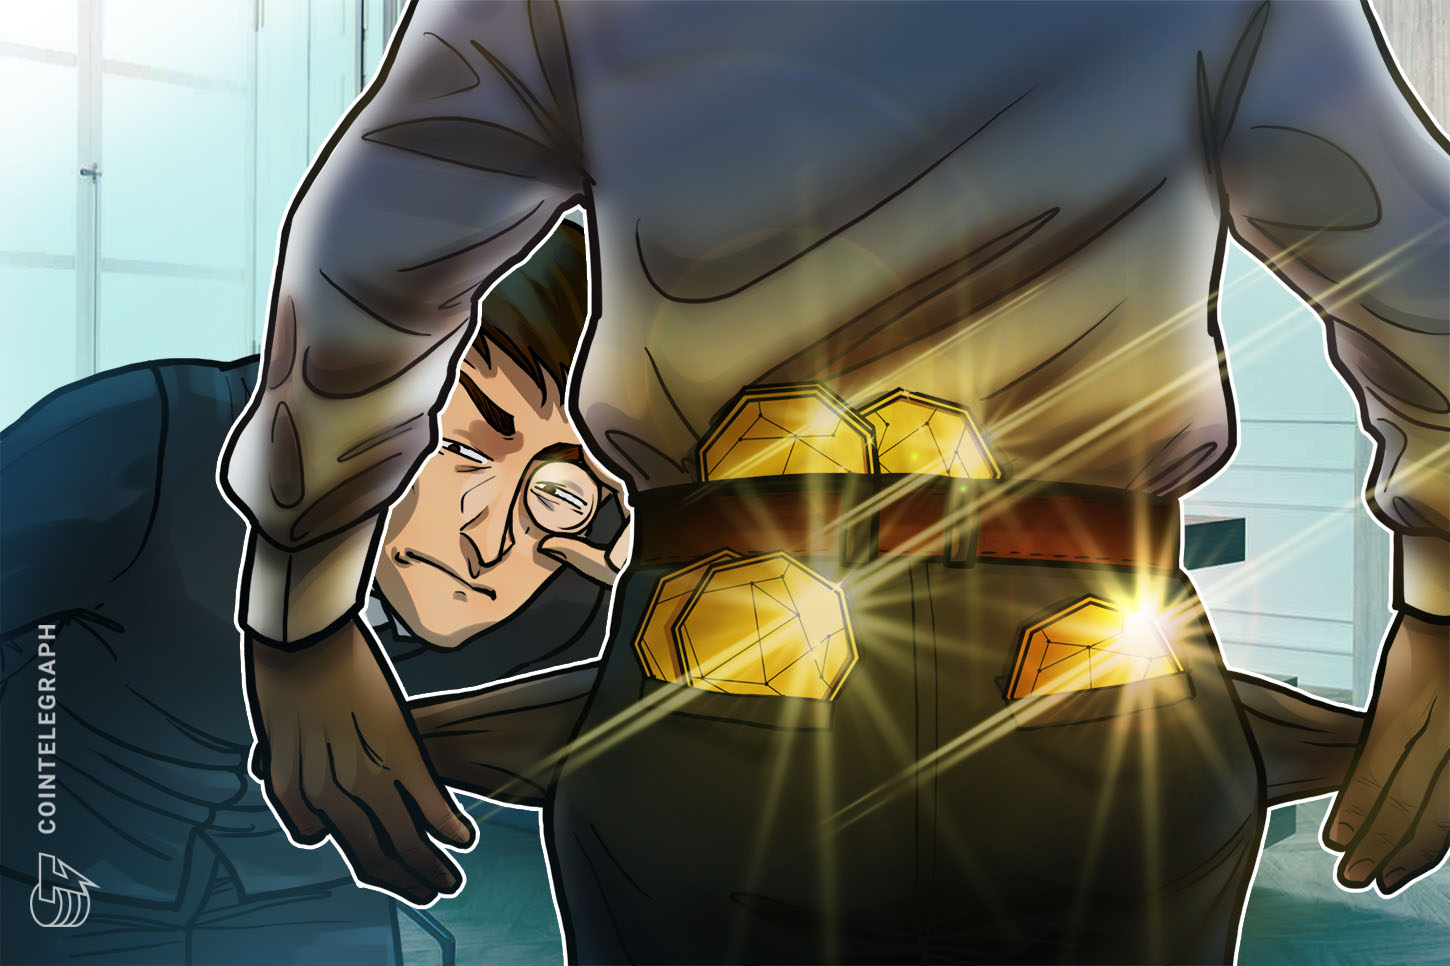 New rules could permit Korean gov't to seize tax evaders' crypto